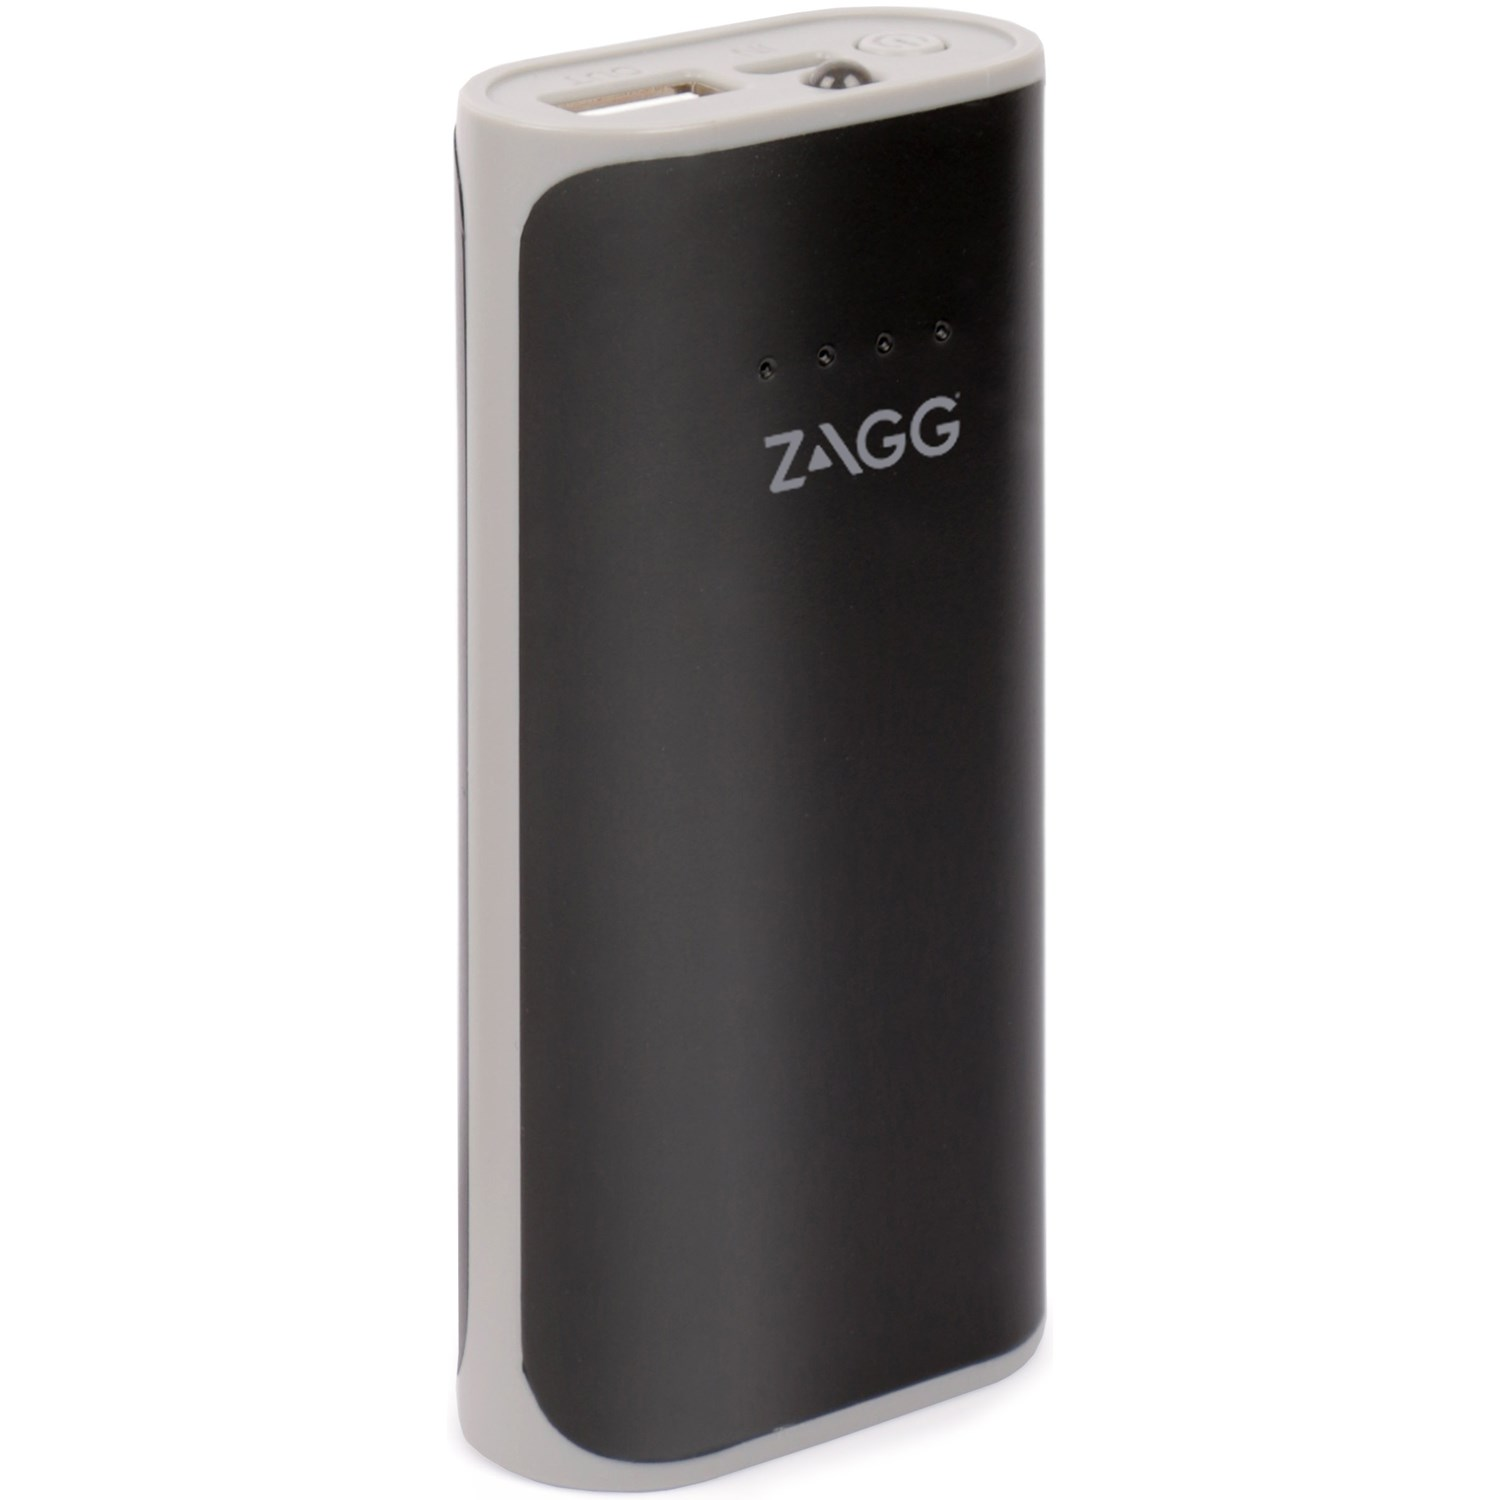 ZAGG Ignition 3 Black Portable Charger & Torch 3000mAh USB @ 2.1A: Φορητή Μπαταρία για Smartphones, Κινητά, Tablets κ.λπ.